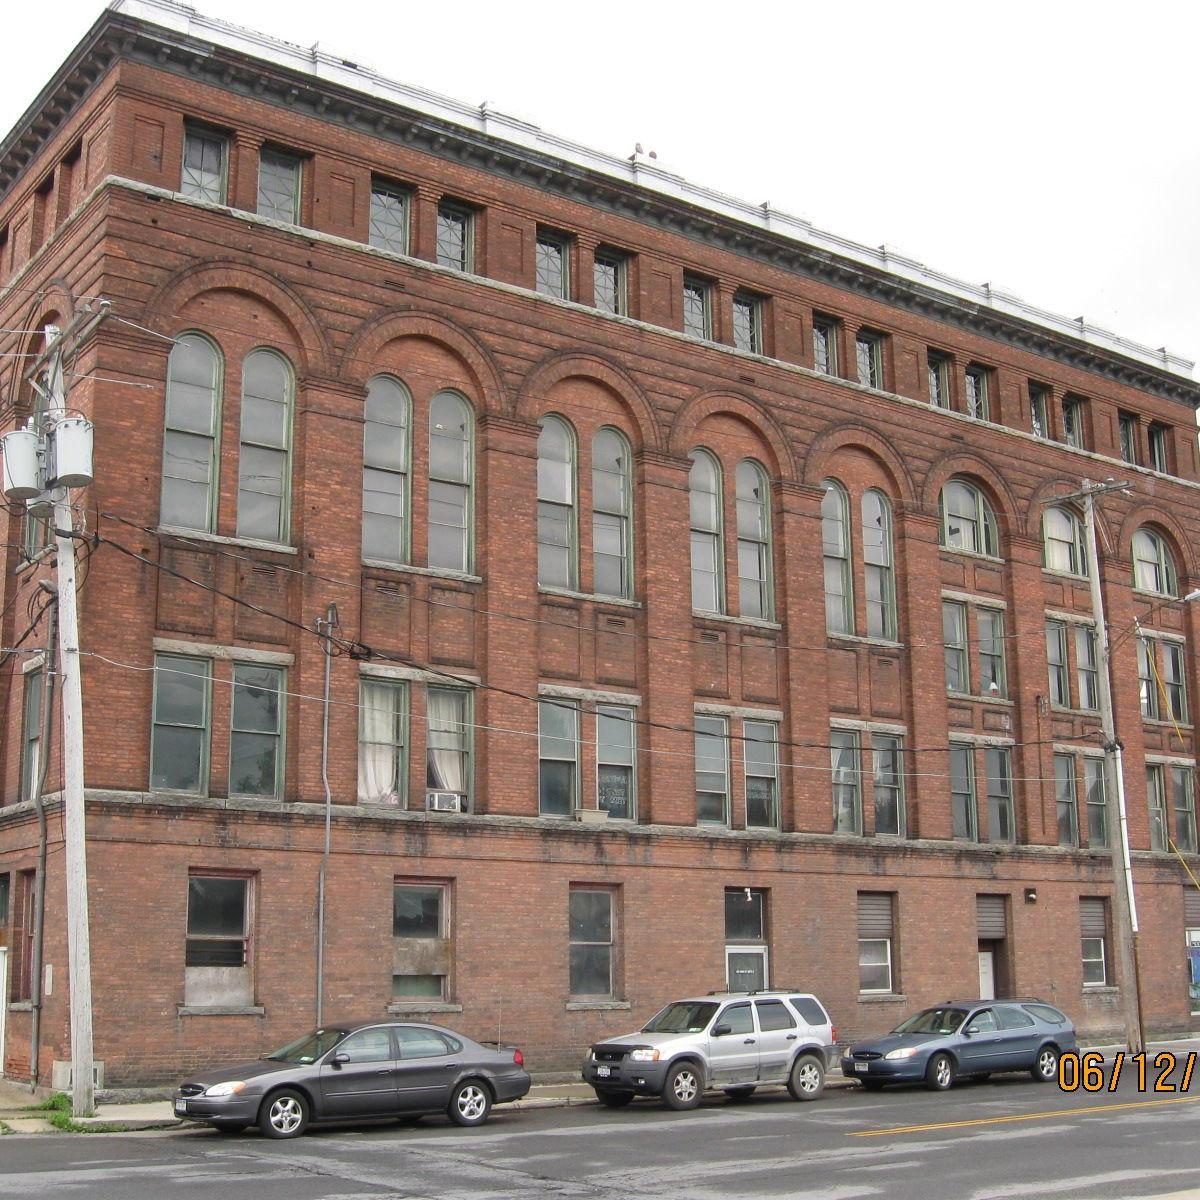 IDA concerned about viability of Masonic Temple project